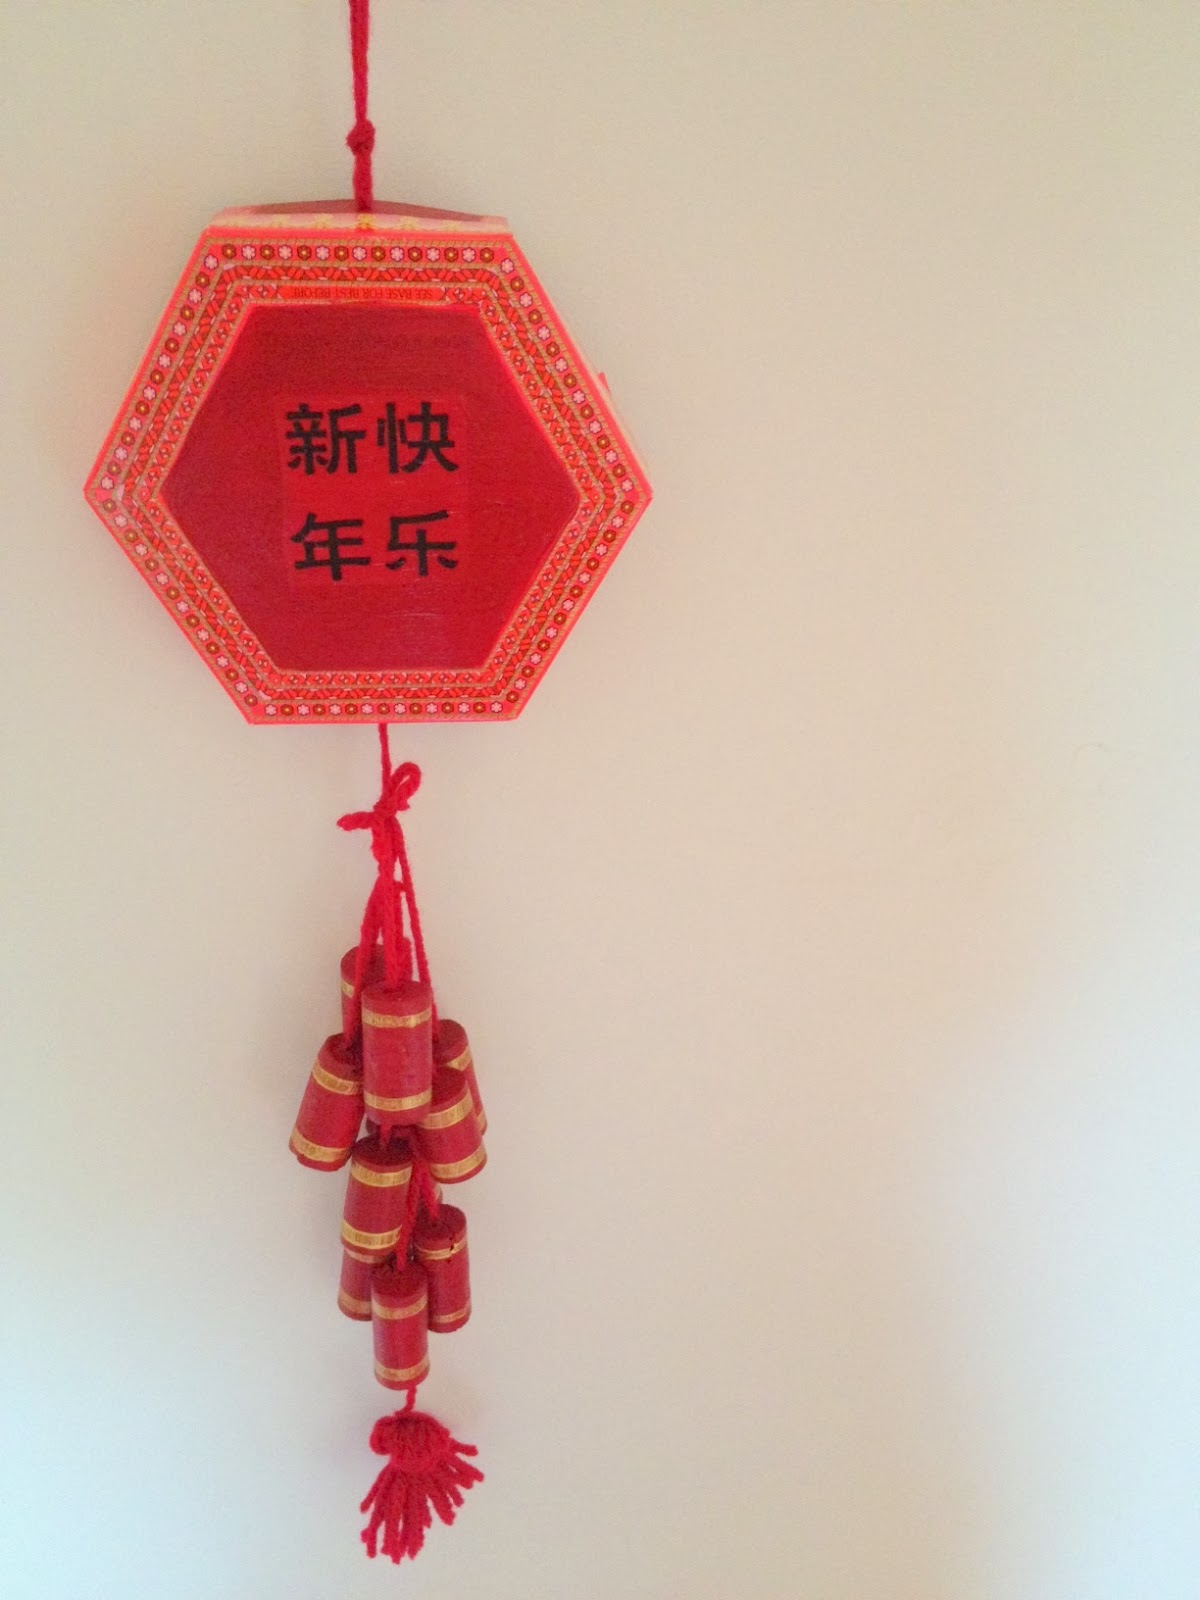 Chinese New Year Fire Cracker